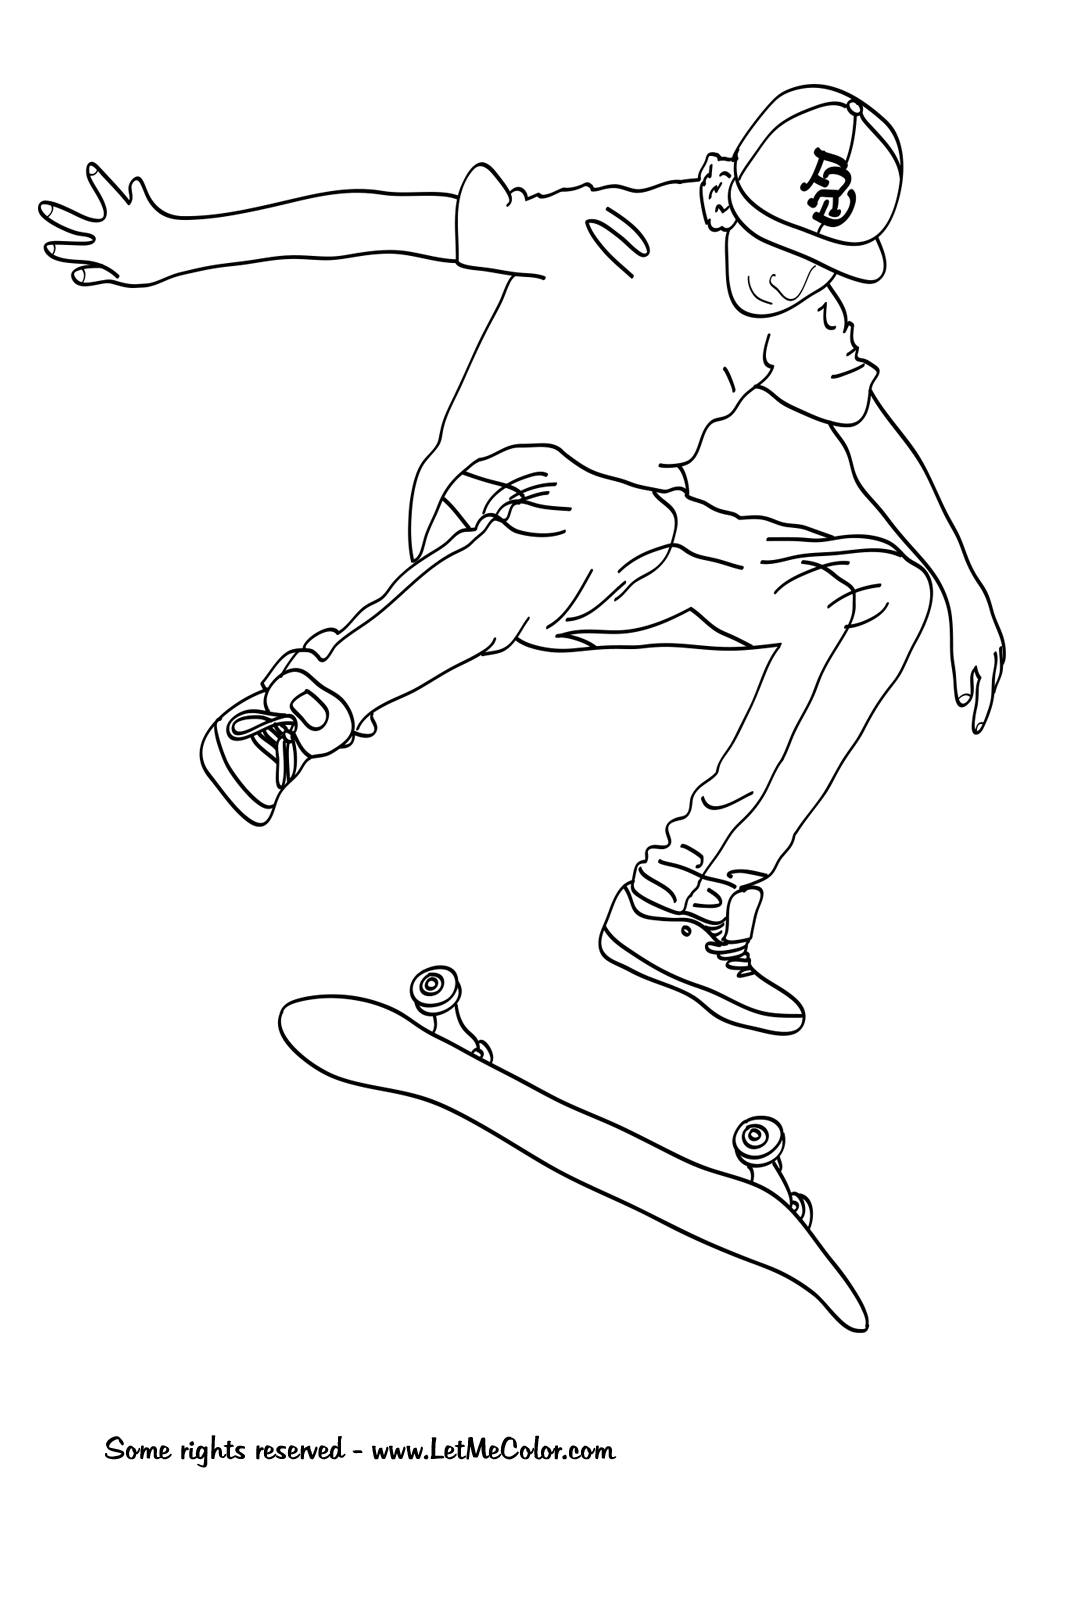 download skateboarding coloring pages free printables ziho coloring